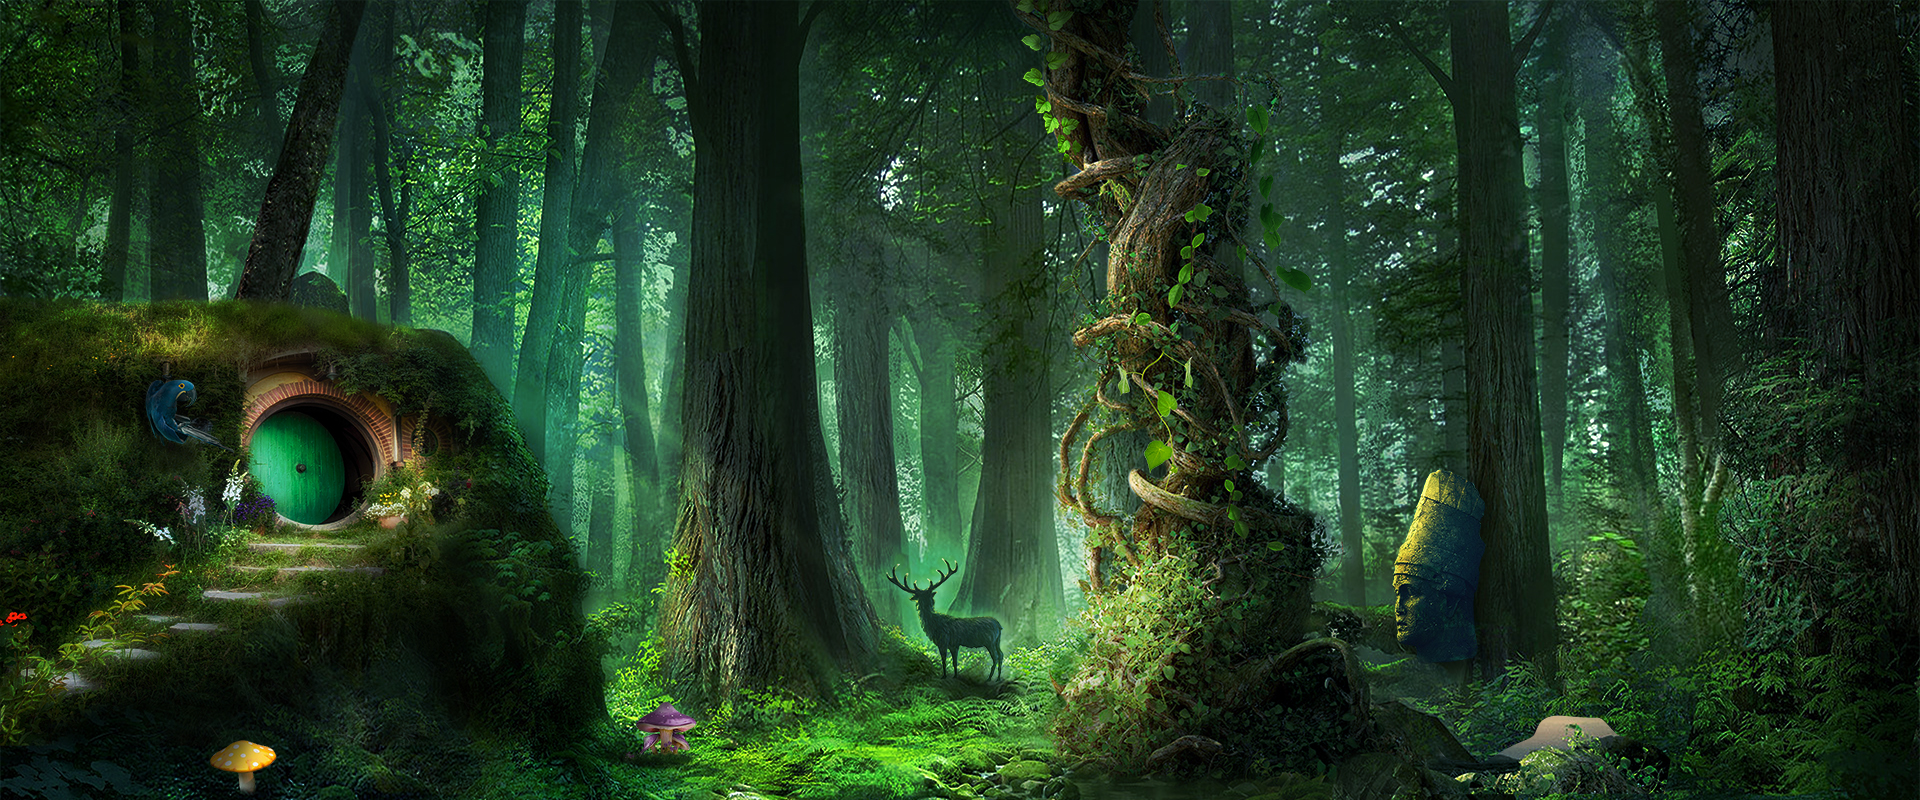 fantasy forest background  dream  forest  cave background